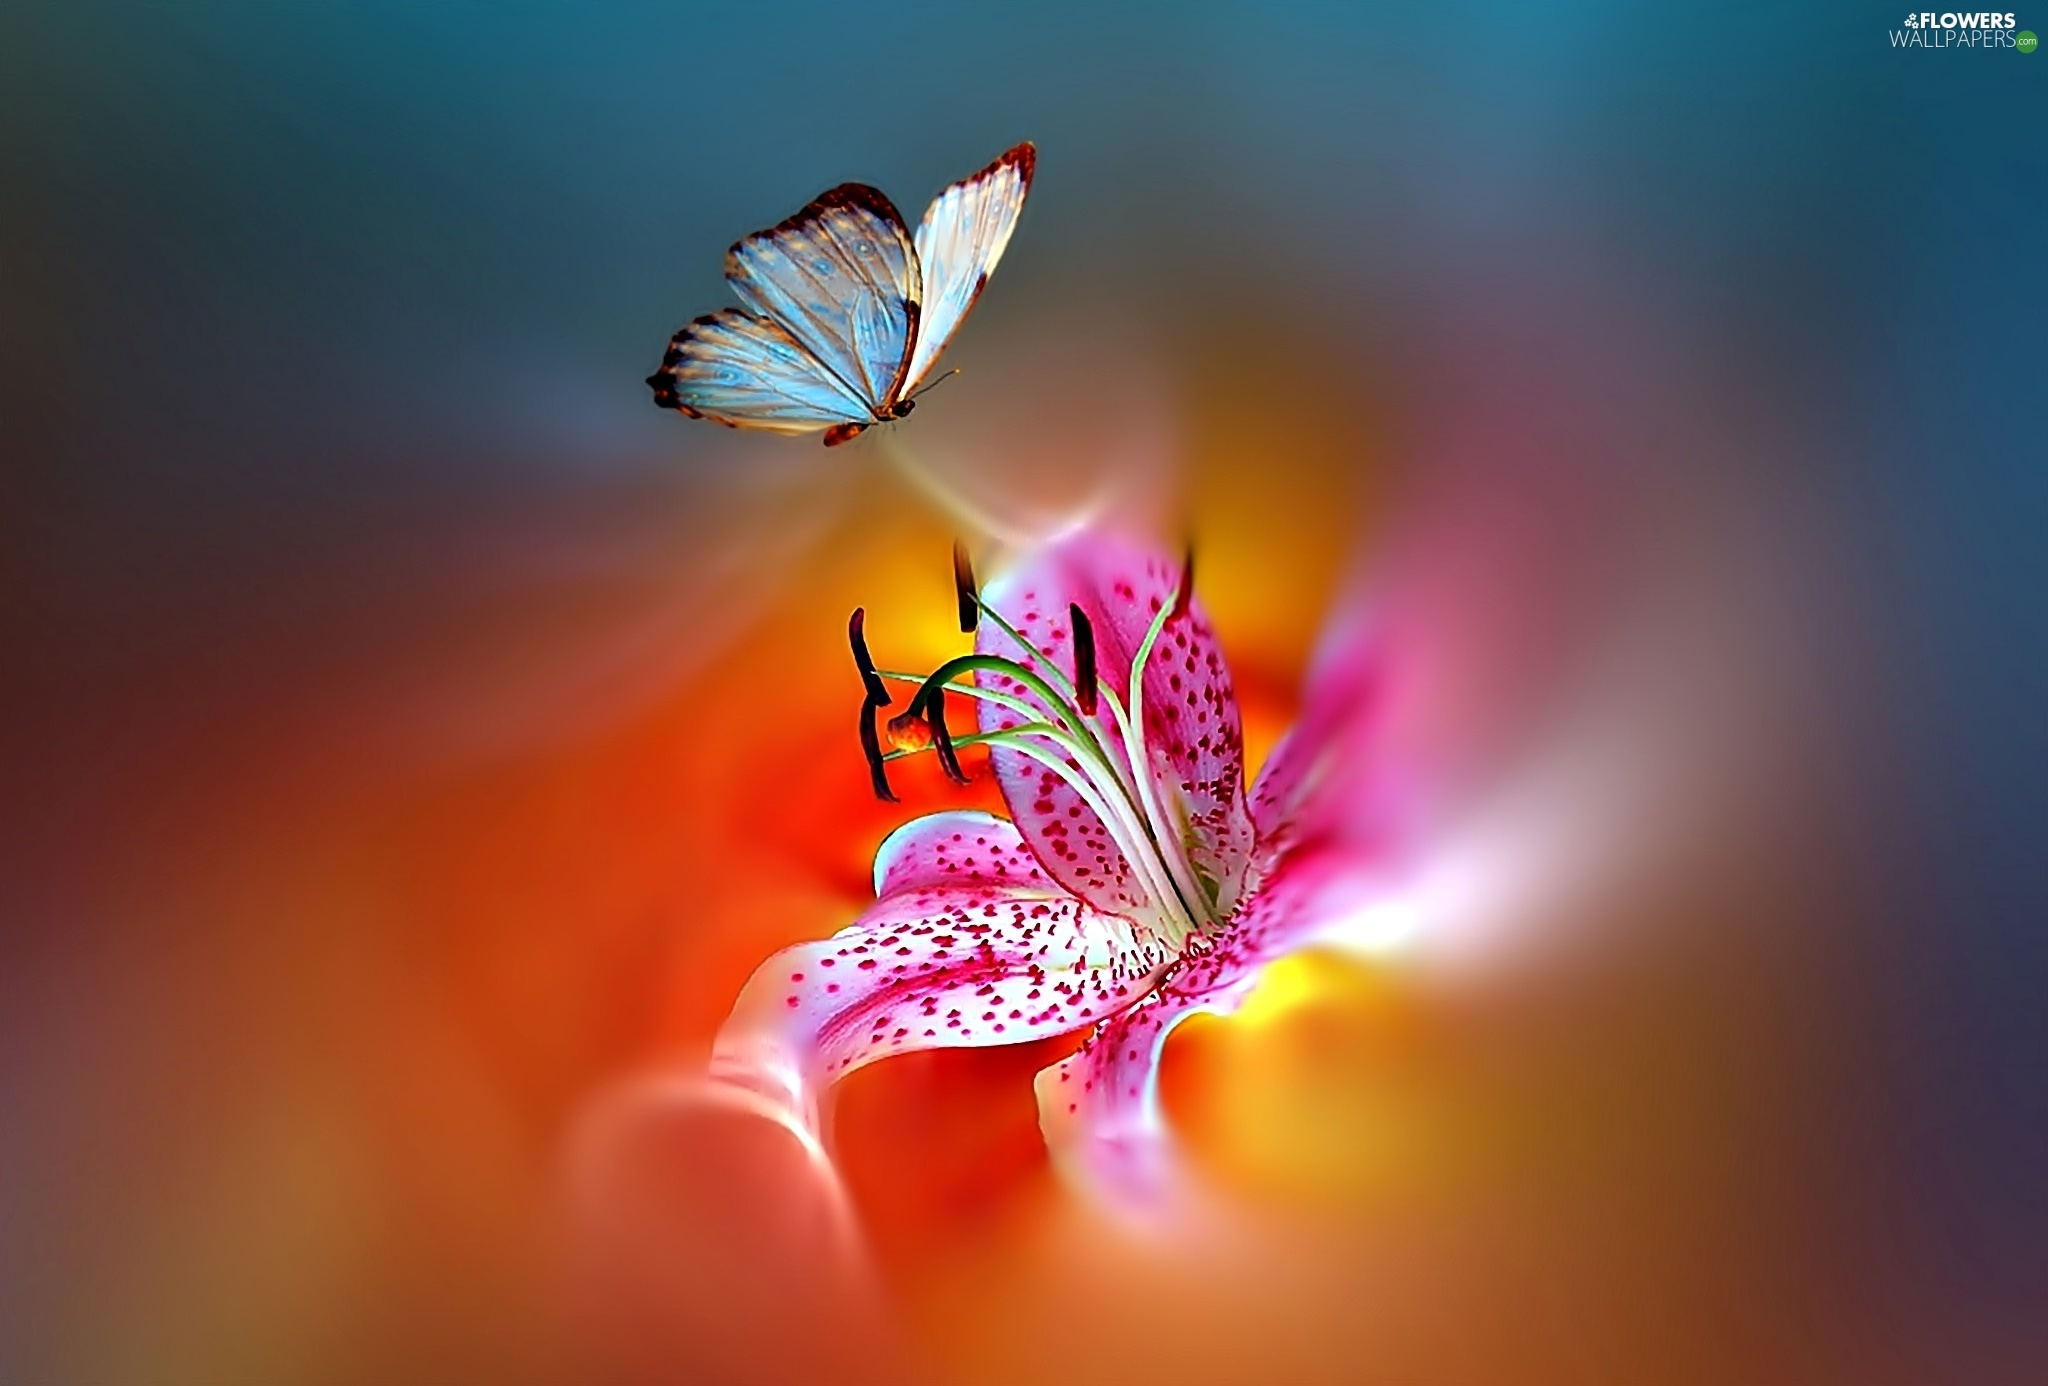 butterfly Tiger lily   Flowers wallpapers 2048x1386 2048x1386